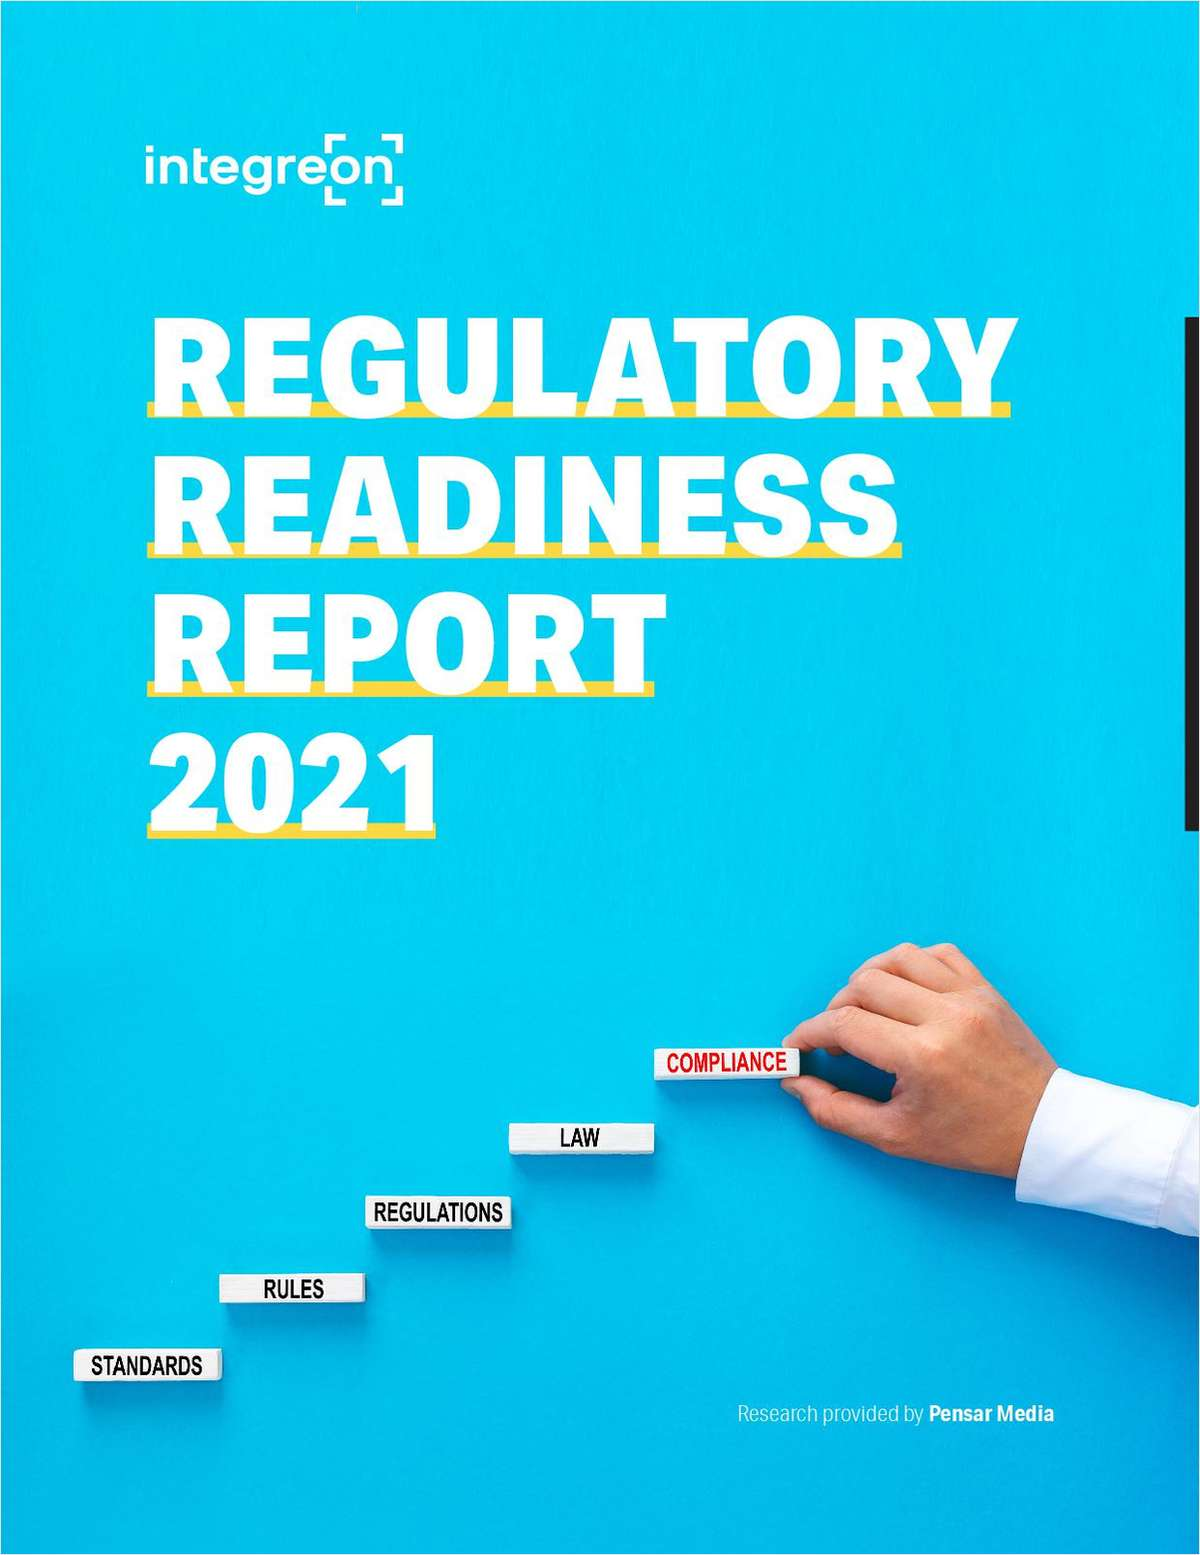 Regulatory compliance professionals have had a challenging 12 months. This survey of more than 200 compliance and legal professionals in the US and the UK reveals the regulatory events that are top of the agenda for compliance professionals and what is likely to keep them occupied next year.